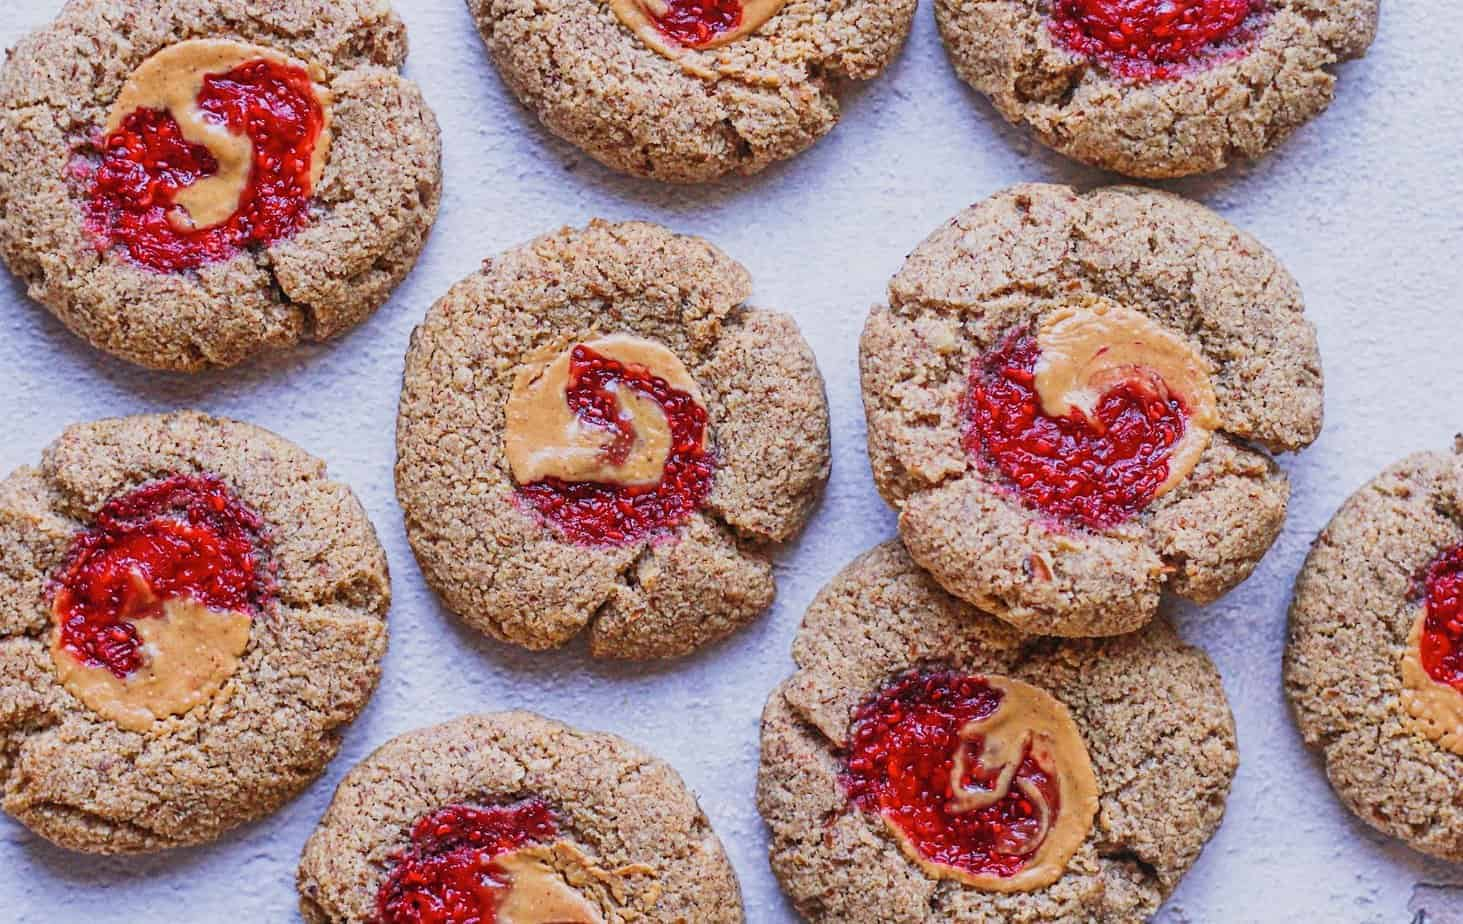 closeup of keto peanut butter and jelly cookies